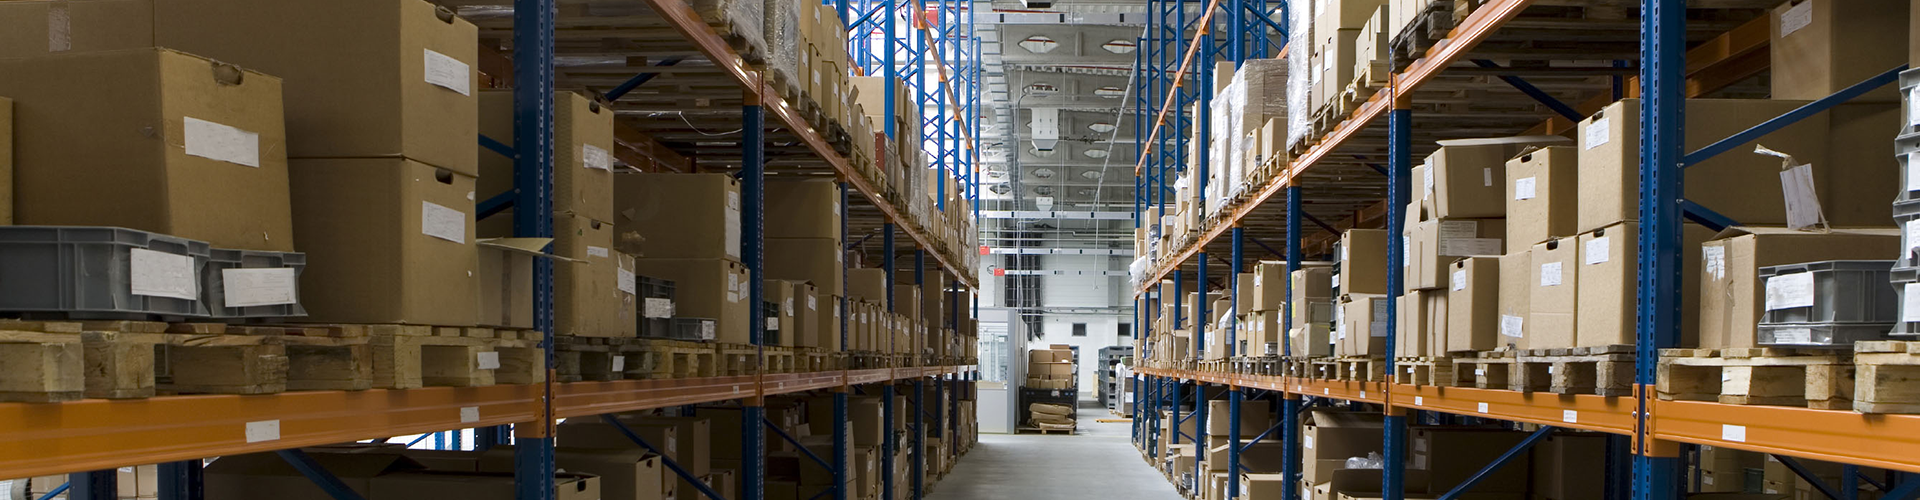 Warehousing and Fulfillment rates